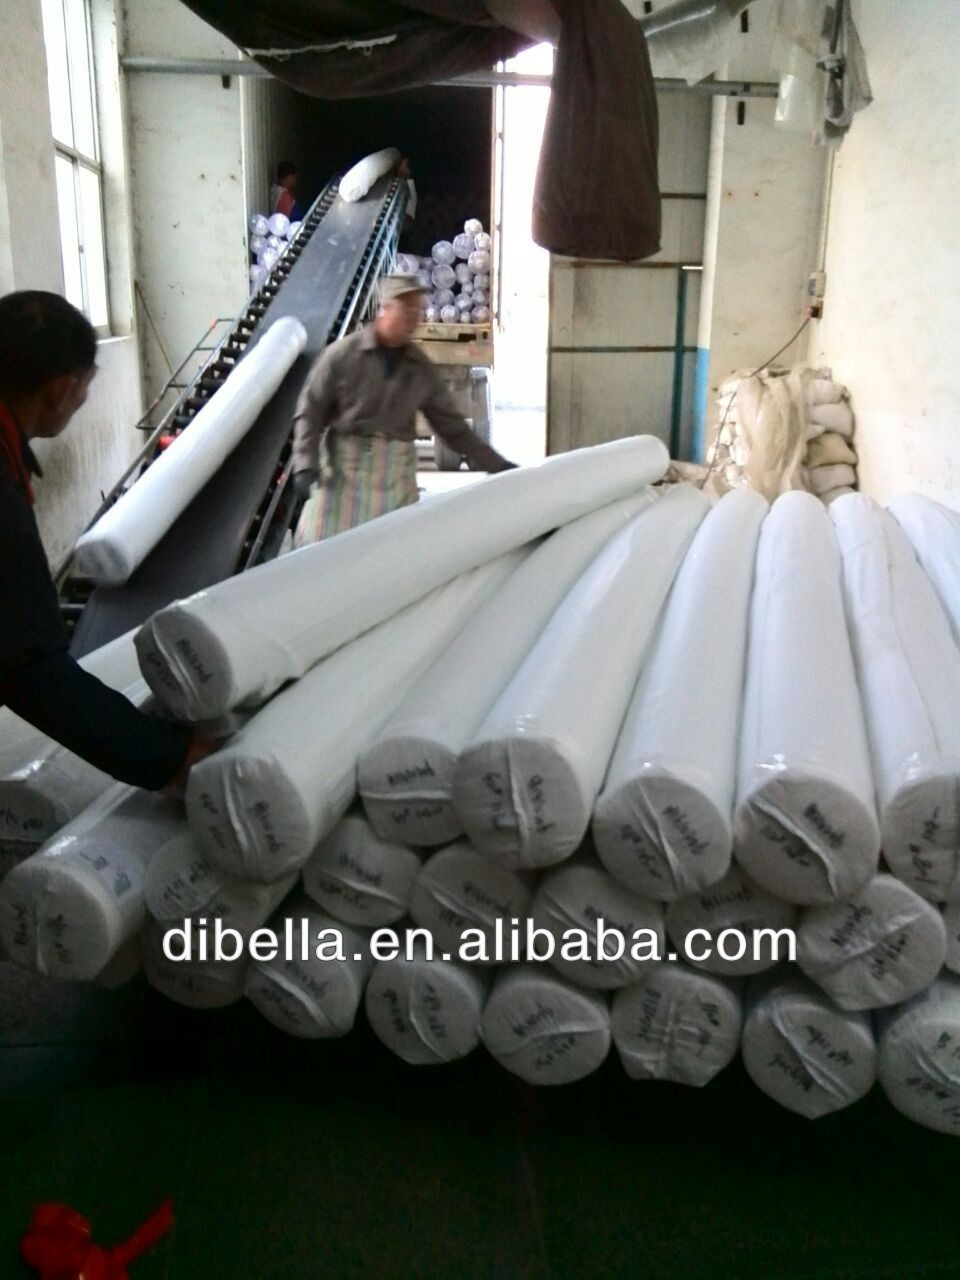 Wuxi dibella stripe bedding sheets of combed yarn airjet woven bedding fabric